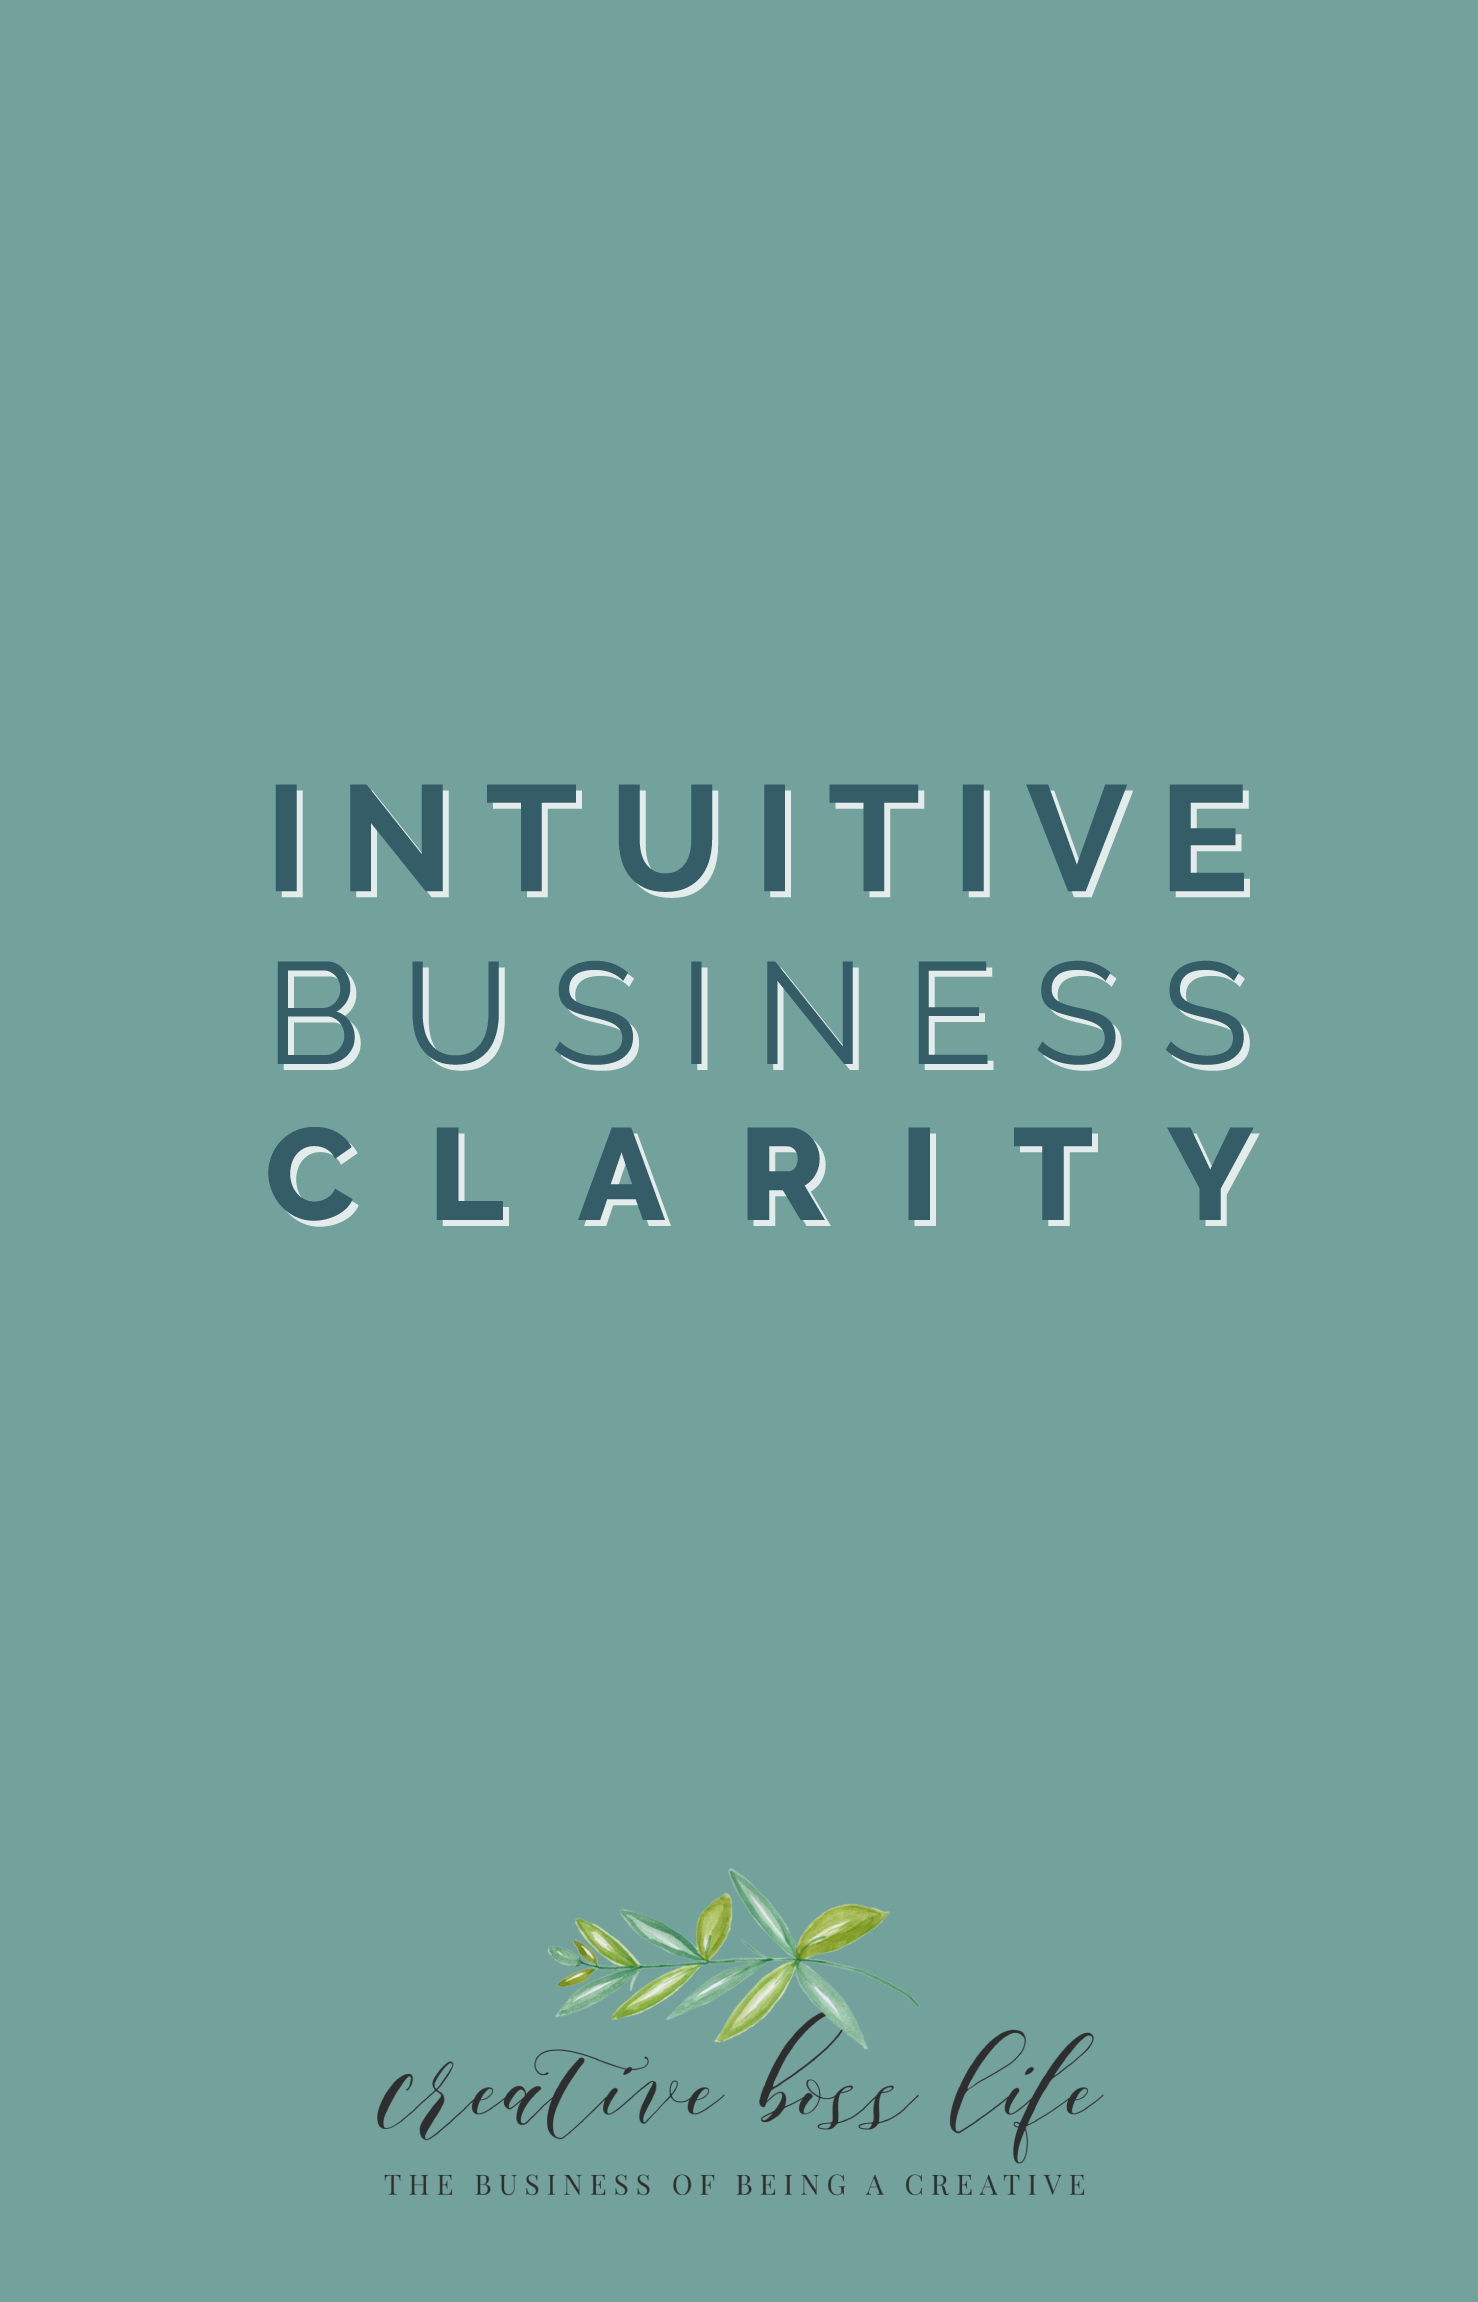 Live intuitive business coaching